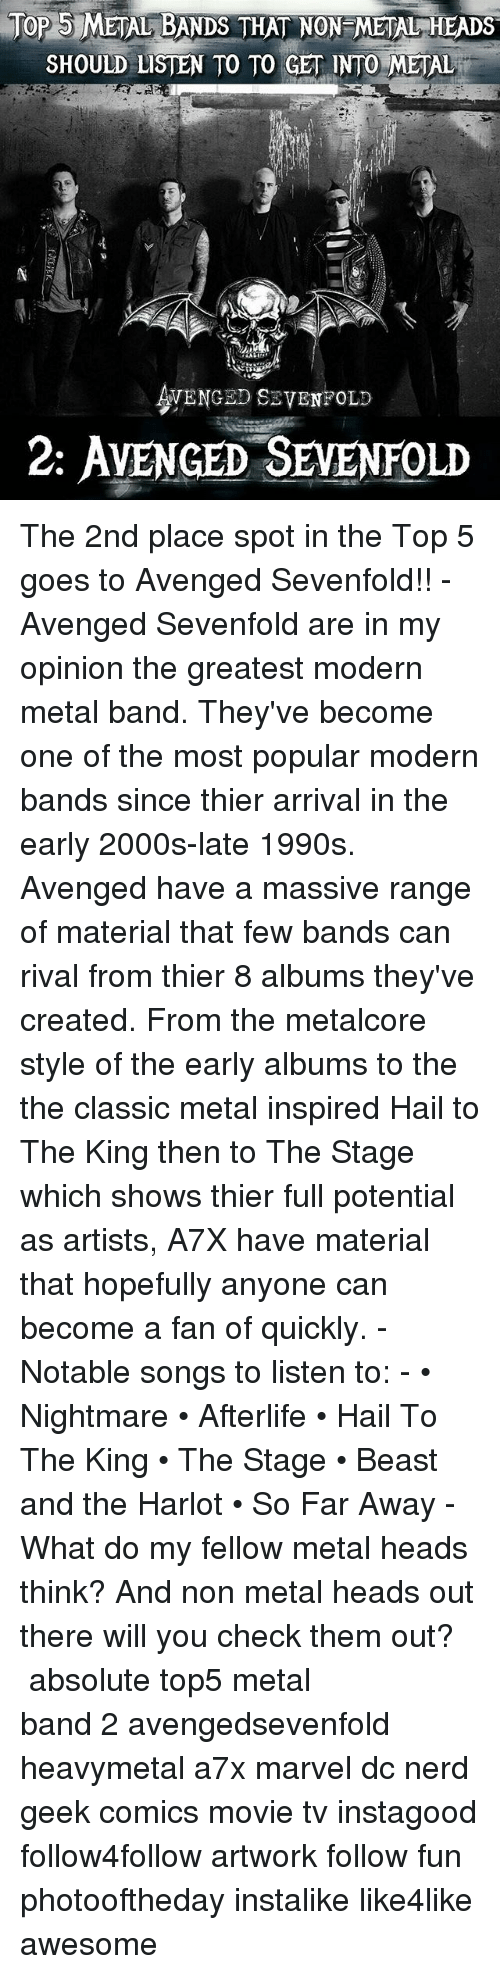 Memes, Nerd, and Marvel: JOP METAL BANDS THAT NON METAL HEADS  SHOULD LISTEN TO TO GET INTO METAL  5  VENGED SEVENFOLD  2: AveNGeD SEMENFOLD The 2nd place spot in the Top 5 goes to Avenged Sevenfold!! - Avenged Sevenfold are in my opinion the greatest modern metal band. They've become one of the most popular modern bands since thier arrival in the early 2000s-late 1990s. Avenged have a massive range of material that few bands can rival from thier 8 albums they've created. From the metalcore style of the early albums to the the classic metal inspired Hail to The King then to The Stage which shows thier full potential as artists, A7X have material that hopefully anyone can become a fan of quickly. - Notable songs to listen to: - • Nightmare • Afterlife • Hail To The King • The Stage • Beast and the Harlot • So Far Away - What do my fellow metal heads think? And non metal heads out there will you check them out? ⚋⚋⚋⚋⚋⚋⚋⚋⚋⚋⚋⚋⚋⚋⚋⚋⚋⚋ absolute top5 metal band 2 avengedsevenfold heavymetal a7x marvel dc nerd geek comics movie tv instagood follow4follow artwork follow fun photooftheday instalike like4like awesome